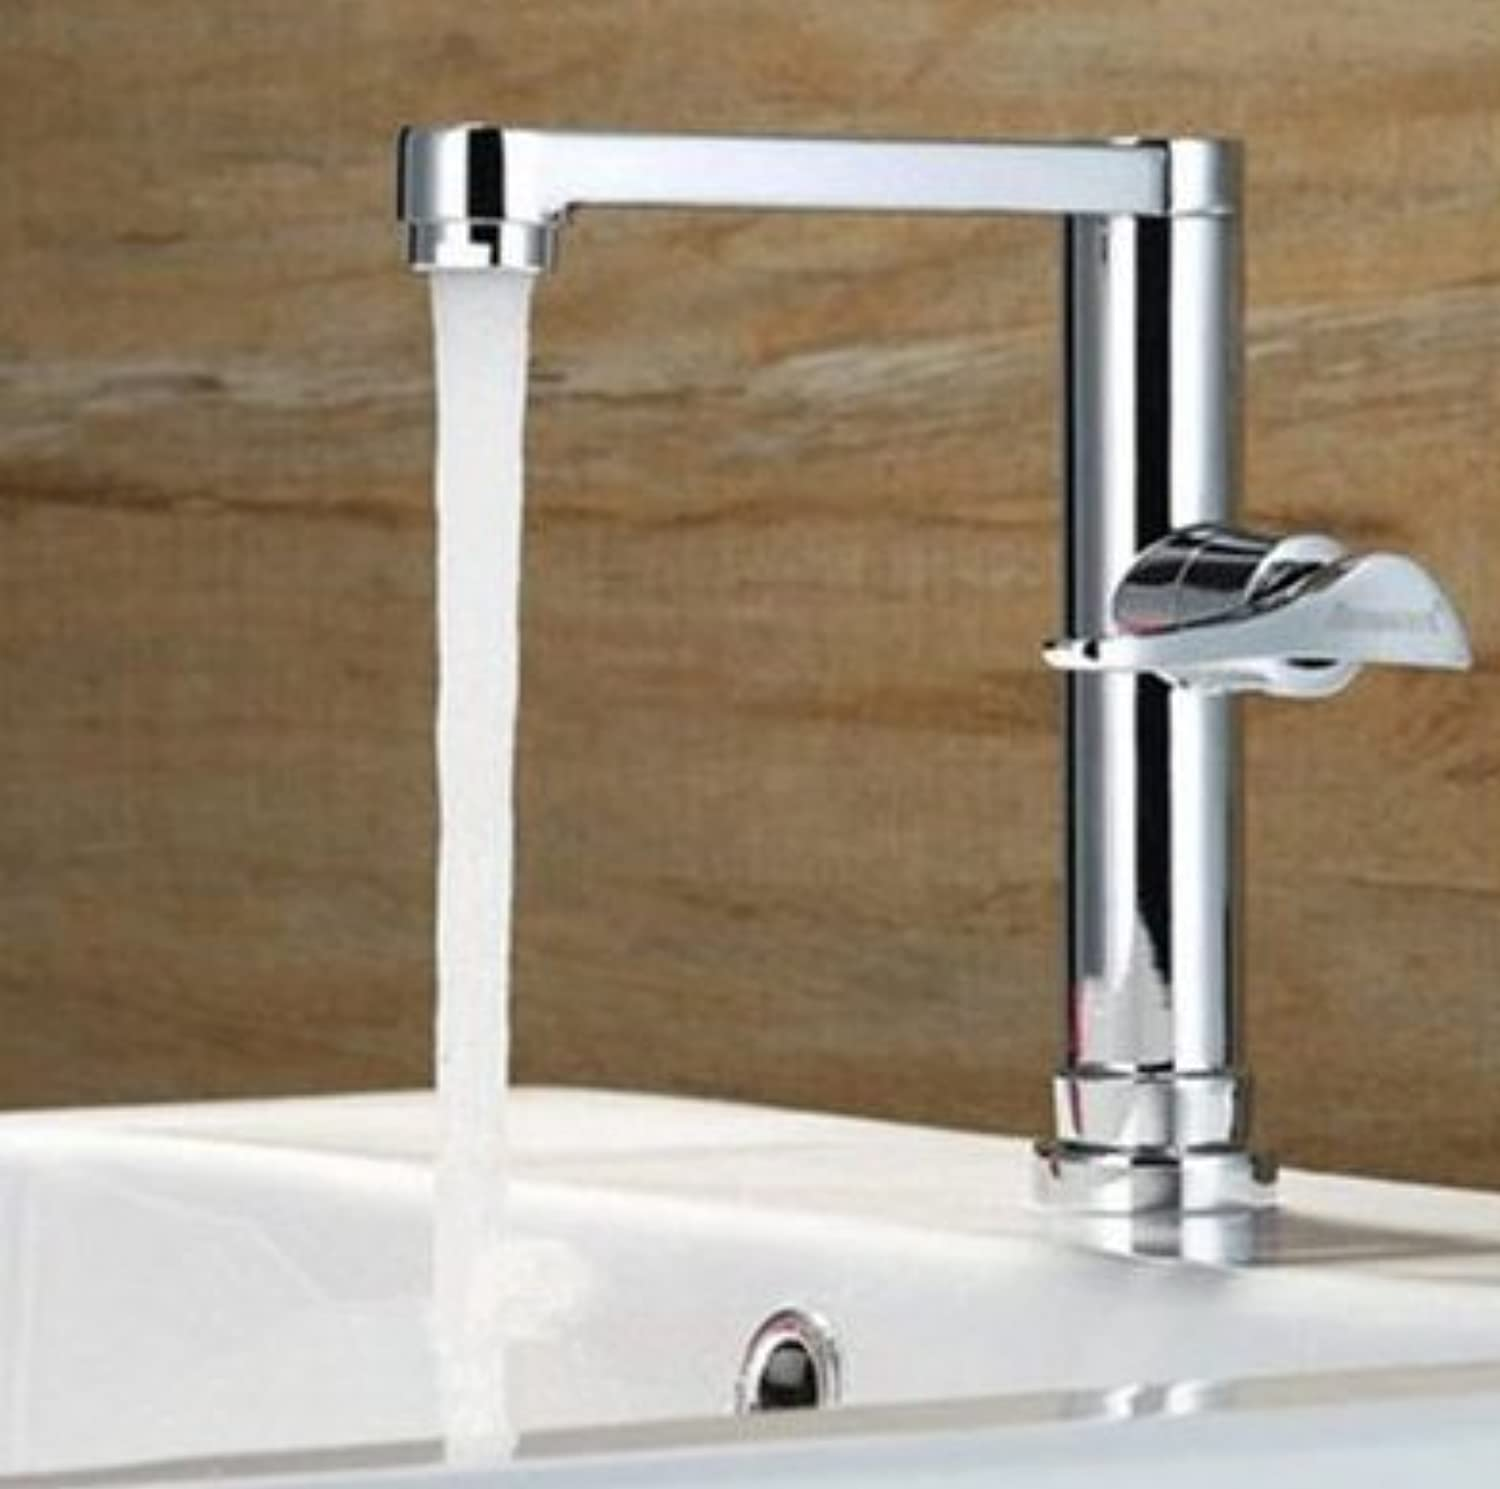 Basin Faucet Singlehand Brass Bathroom Faucets Basin Fast On Cold Only Simple Faucet